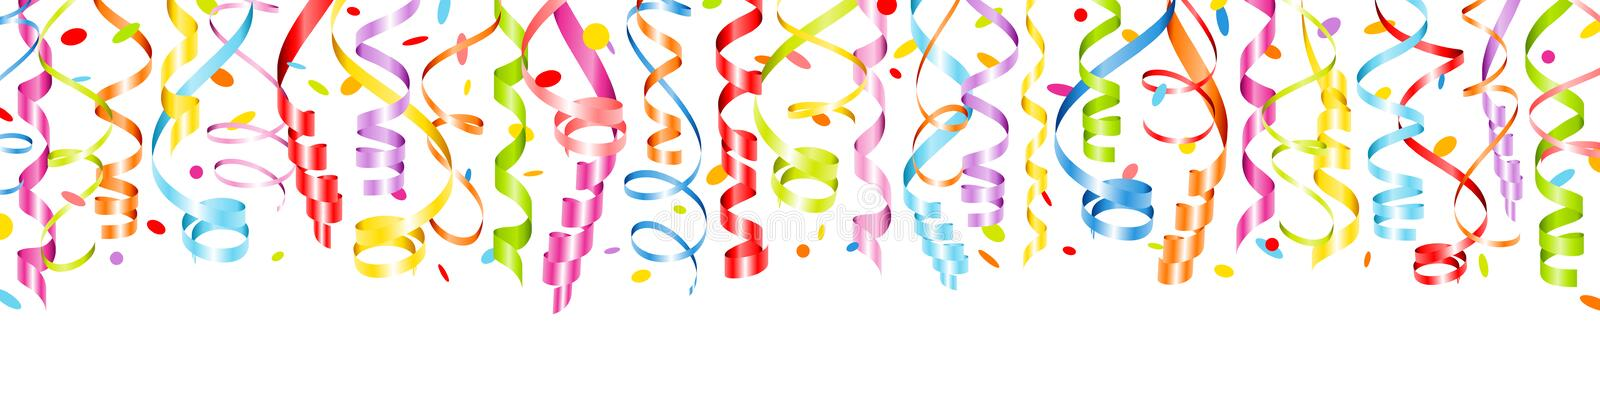 Horizontal Banner Colorful Streamers And Confetti vector illustration